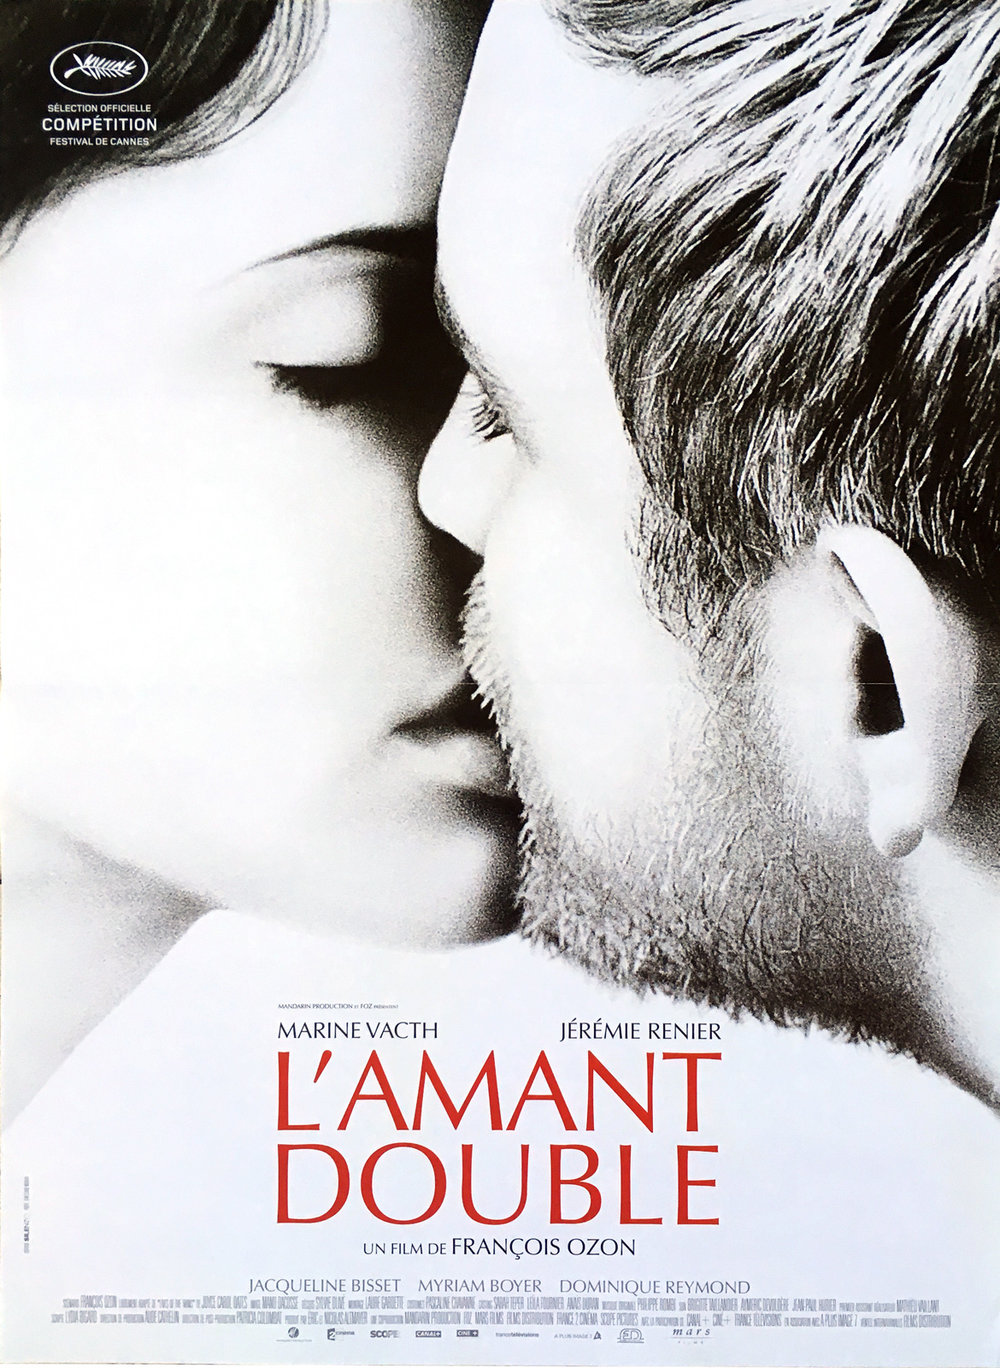 amant-double-movie-poster-15x21-in-2017-françois-ozon-jacqueline-bisset.jpg